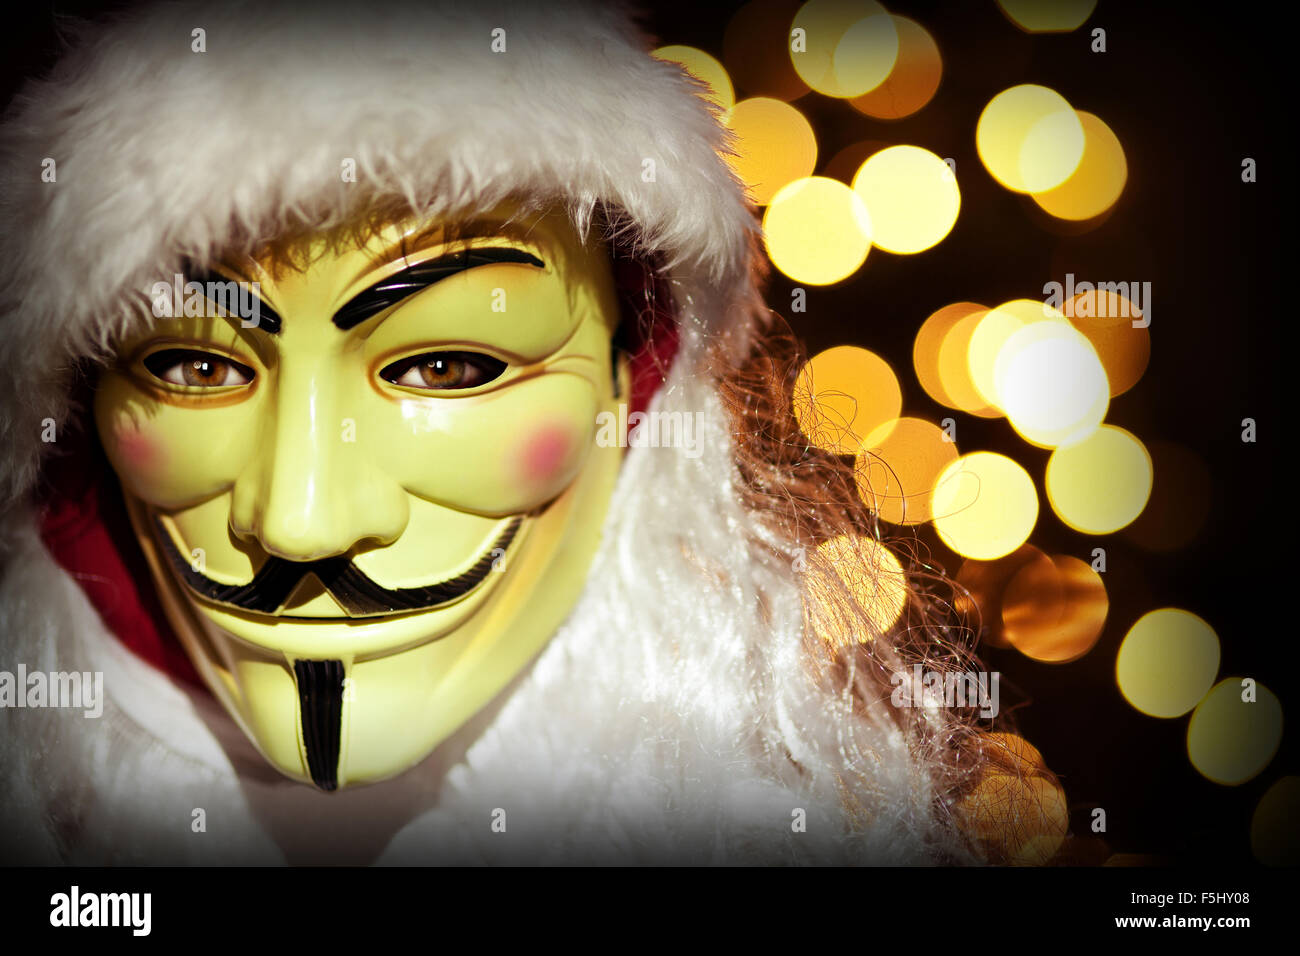 Santa Claus Mask Stock Photos & Santa Claus Mask Stock Images - Alamy